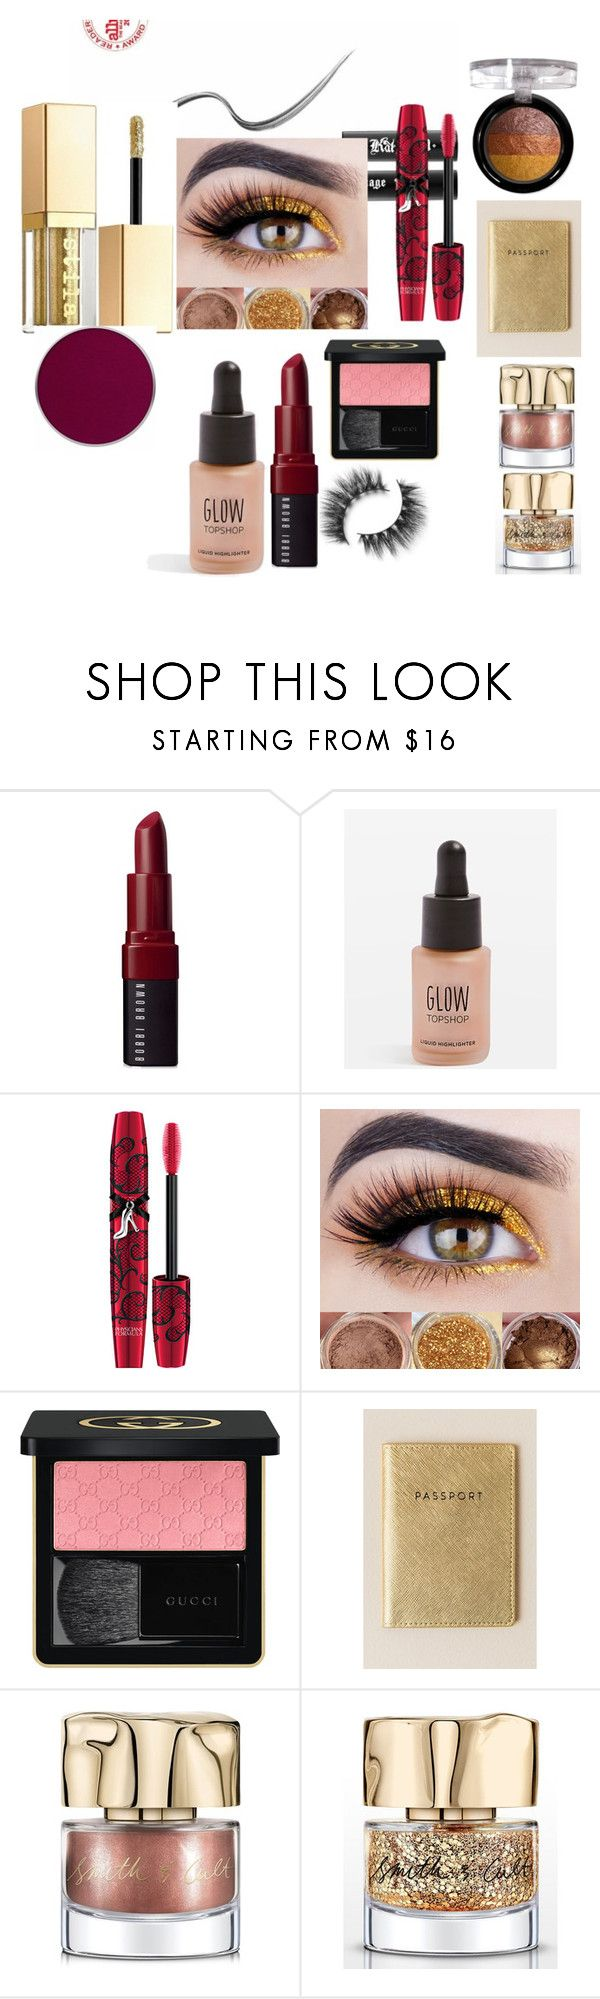 """""""Goldie Rocks"""" by mary-lee-lambert ❤ liked on Polyvore featuring beauty, Bobbi Brown Cosmetics, Topshop, Physicians Formula, Gucci, Francesca's, Smith & Cult and Forever 21"""